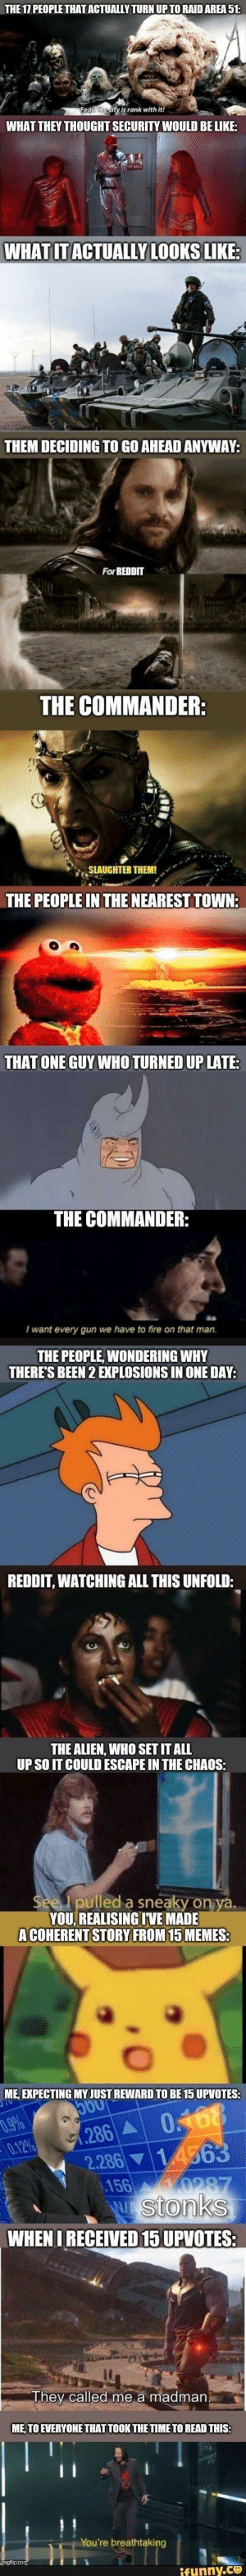 meme 100: THE 17 PEOPLE THAT ACTUALLY TURN UP TO RAID AREA 51:  Fear the city is rank with it!  WHAT THEY THOUGHT SECURITY WOULD BE LIKE:  WHAT IT ACTUALLY LOOKS LIKE:  THEM DECIDING TO GO AHEAD ANYWAY:  For REDDIT  THE COMMANDER:  SLAUGHTER THEM!  THE PEOPLE IN THE NEAREST TOWN:  THAT ONE GUY WHO TURNED UP LATE:  THE COMMANDER:  I want every gun we have to fire on that man.  THE PEOPLE, WONDERING WHY  THERE'S BEEN 2 EXPLOSIONS IN ONE DAY:  REDDIT, WATCHING ALL THIS UNFOLD:  THE ALIEN, WHO SET IT ALL  UP SO IT COULD ESCAPE IN THE CHAOS:  See, I pulled a sneaky on ya.  YOU, REALISING IVE MADE  A COHERENT STORY FROM 15 MEMES:  ME, EXPECTING MY JUST REWARD TO BE 15 UPVOTES:  5O0  0.9%  0.12%  0.168  1.286 A  2.286 14563  156  0287  Wstonks  WHEN I RECEIVED 15 UPVOTES:  They called me a madman.  ME, TO EVERYONE THAT TOOK THE TIME TO READ THIS:  You're breathtaking  umgflip.com  ifunny.co meme 100